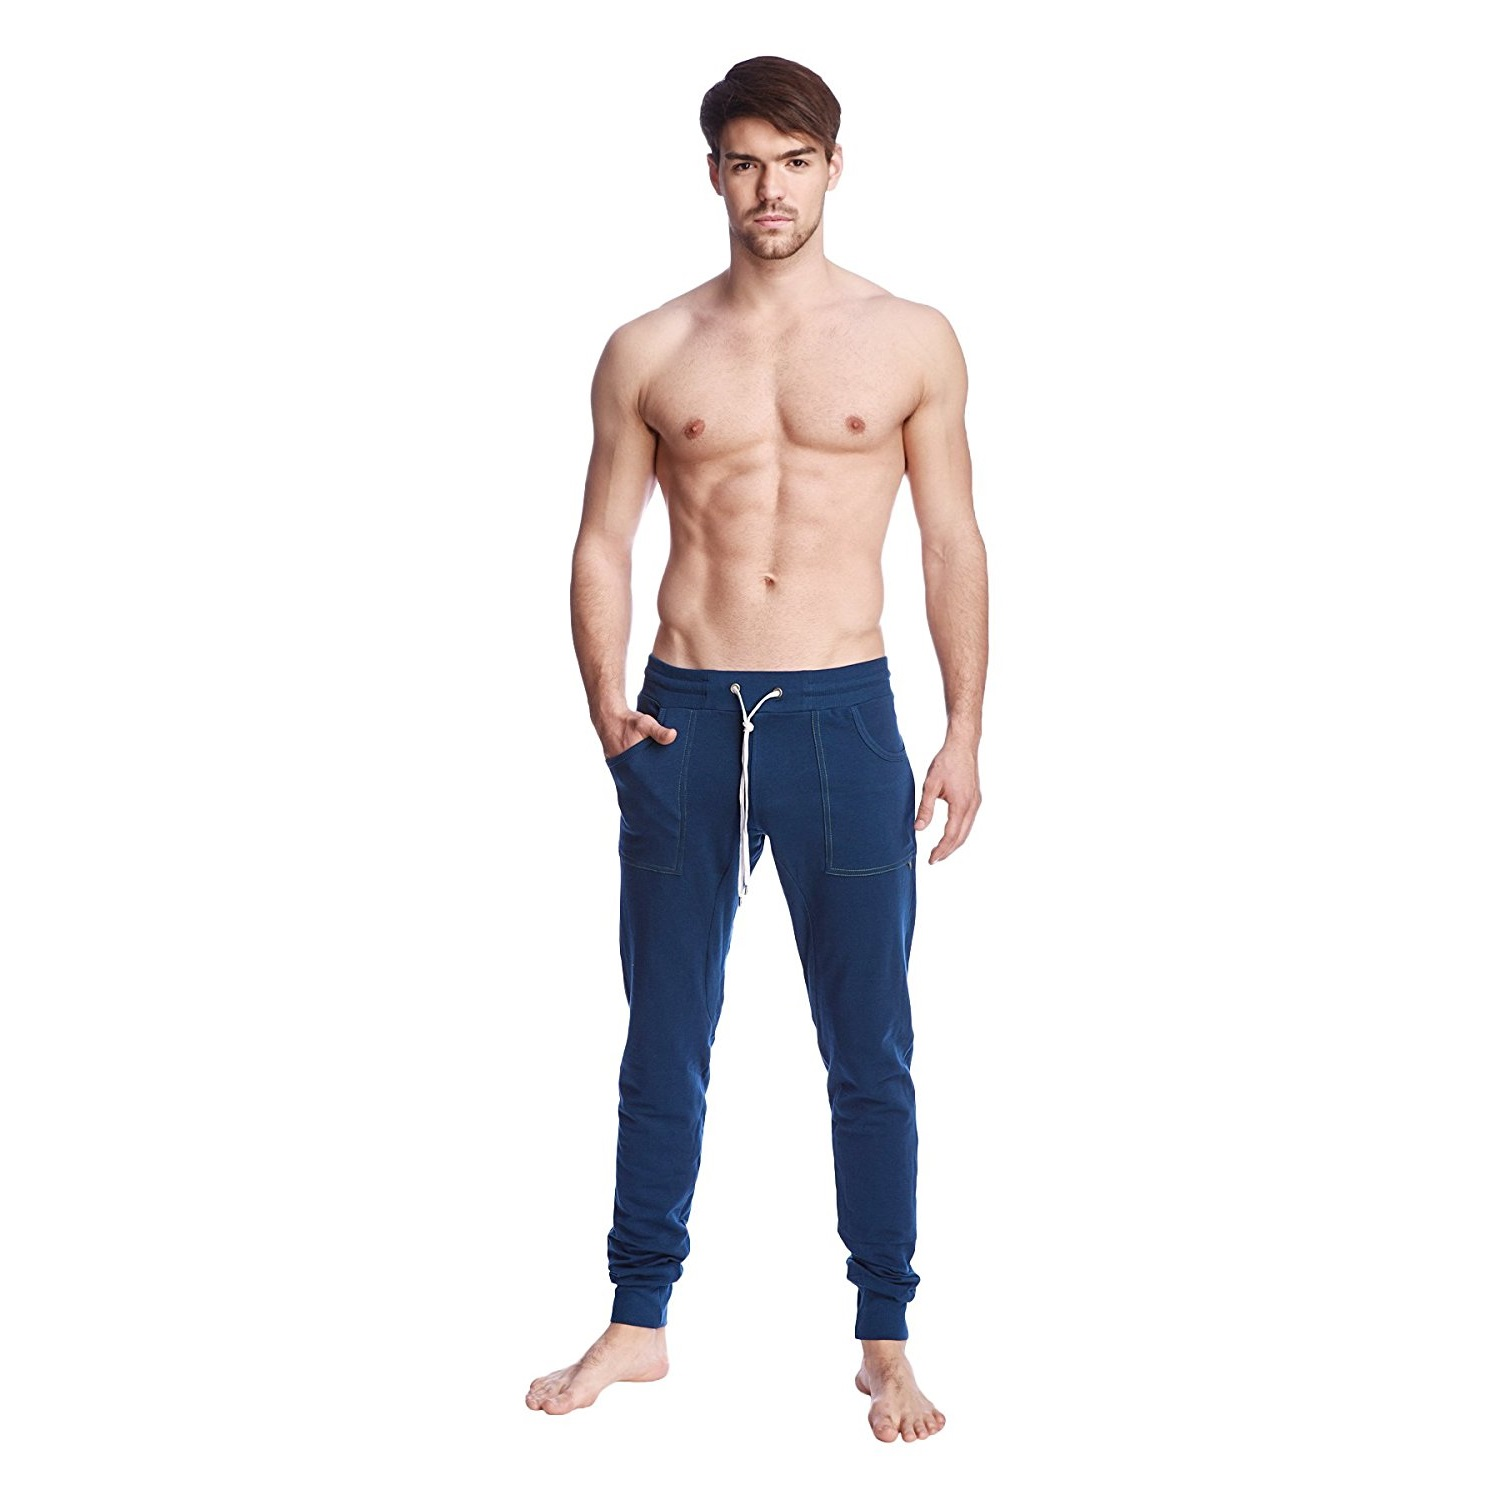 4-rth mens long cuffed jogger yoga pants solid royal blue